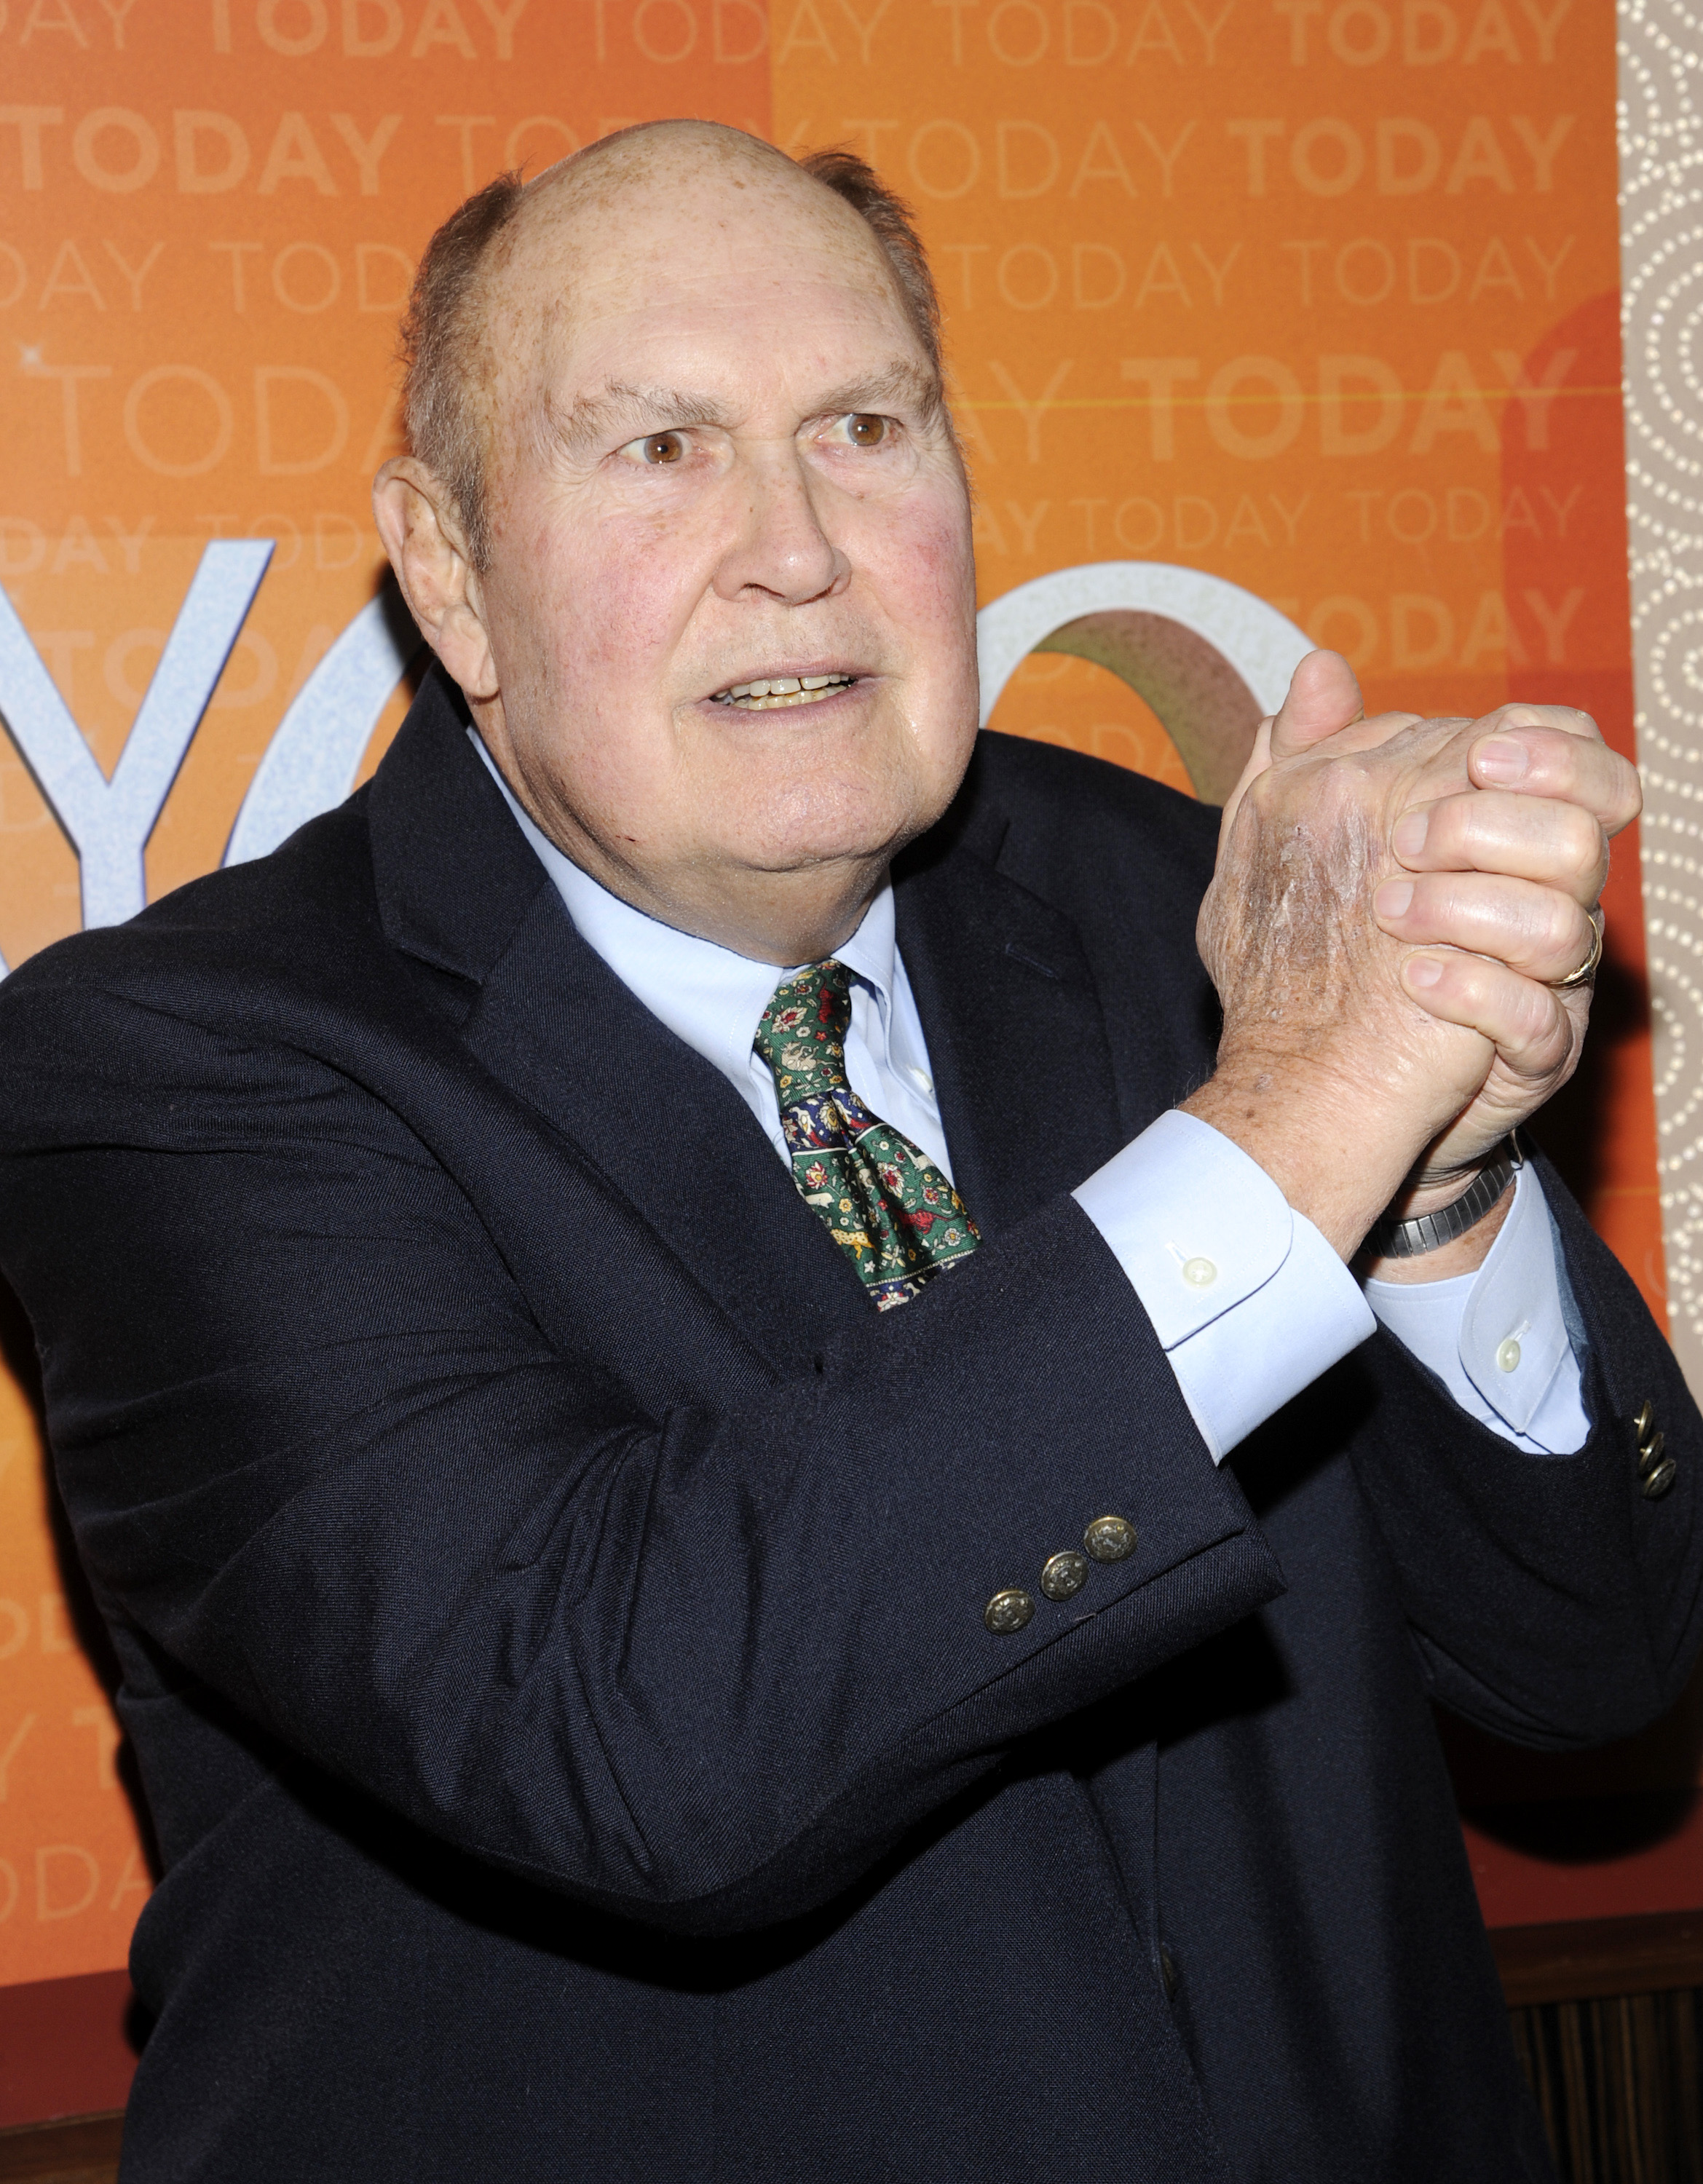 TVs Willard Scott Of Today Show Marries At 80 The Blade